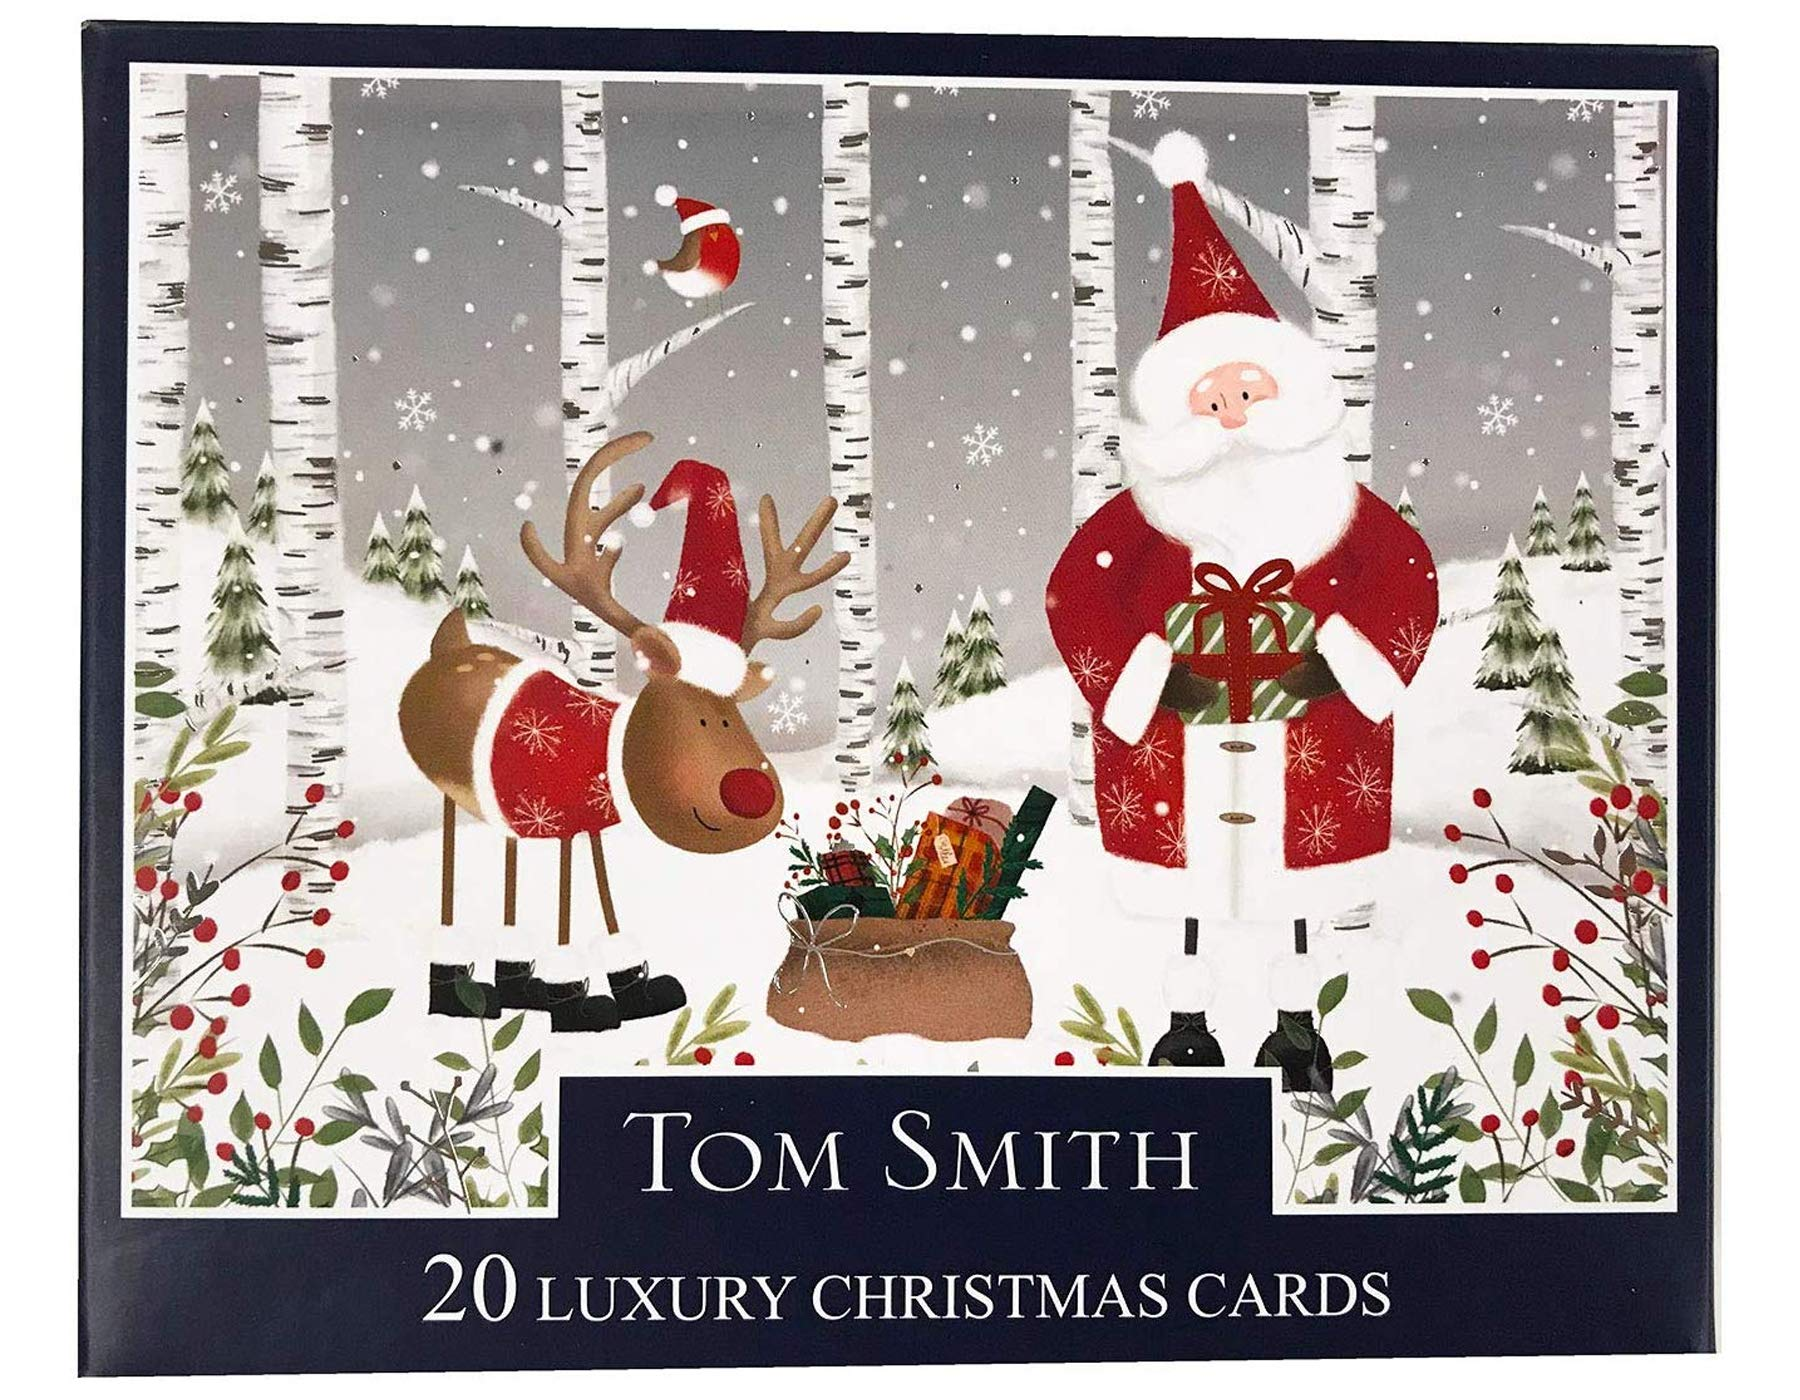 Tom Smith Boxed Traditional Christmas Cards Pack Of 20 Santa Rudolph Buy Online In India Missing Category Value Products In India See Prices Reviews And Free Delivery Over 4 000 Desertcart